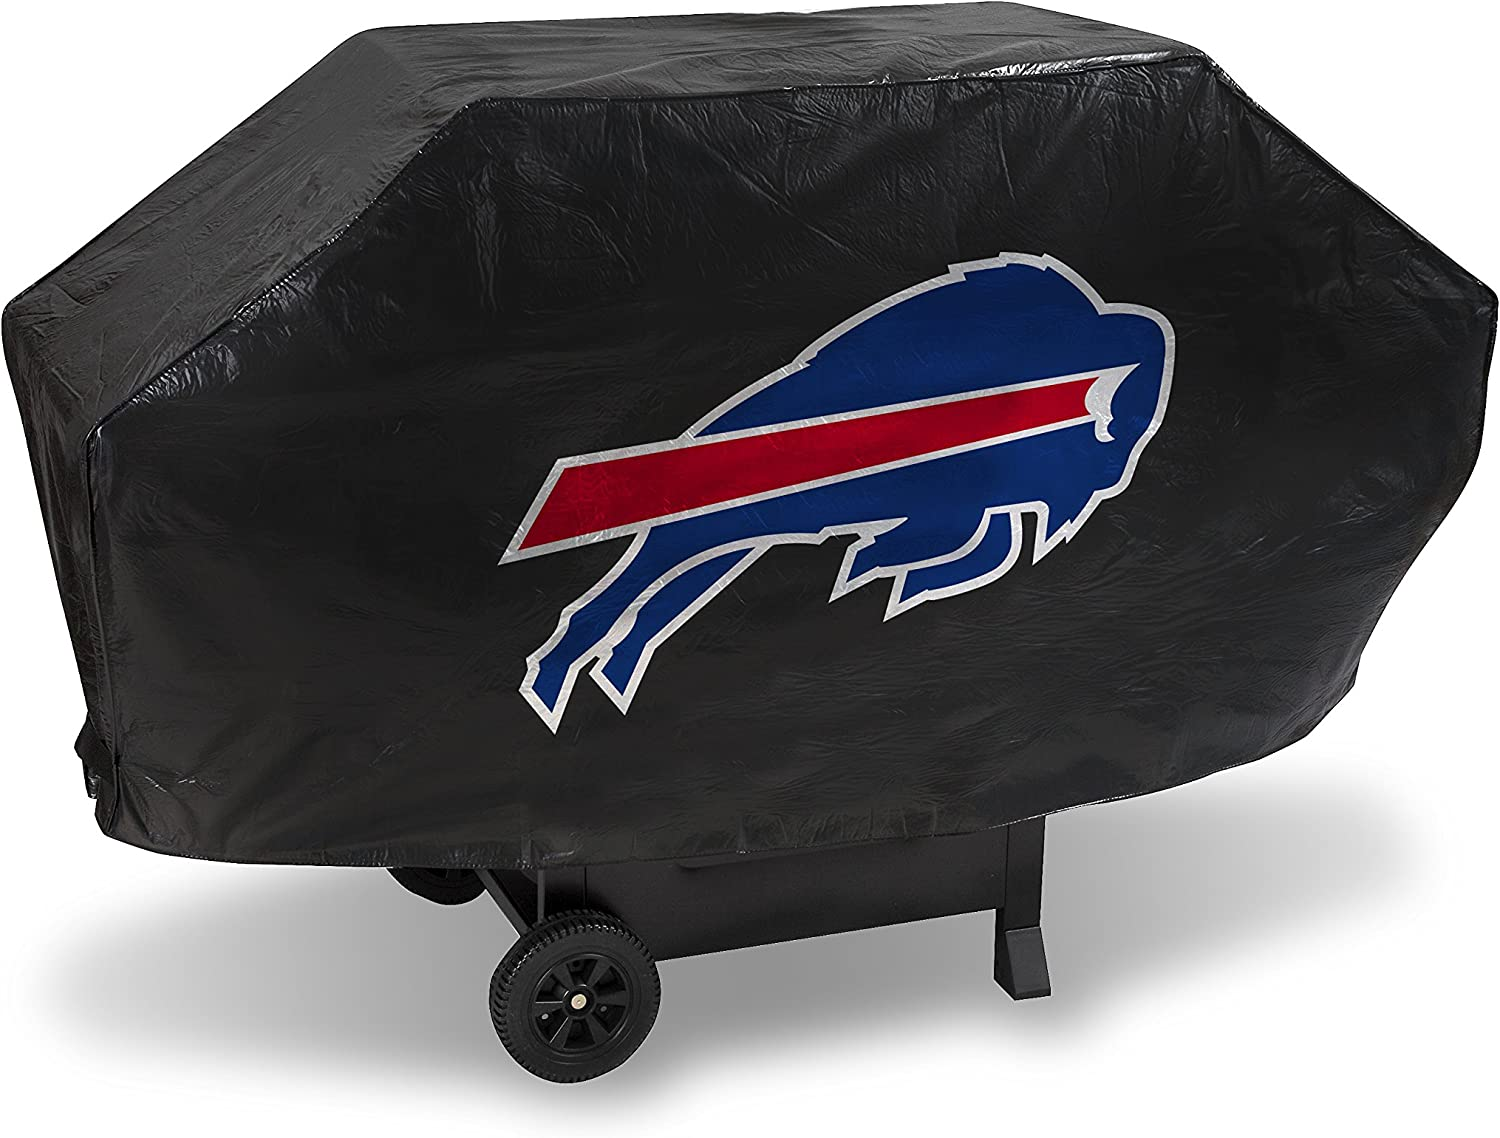 Rico Industries NFL Fan Shop Vinyl Padded Deluxe Grill Cover